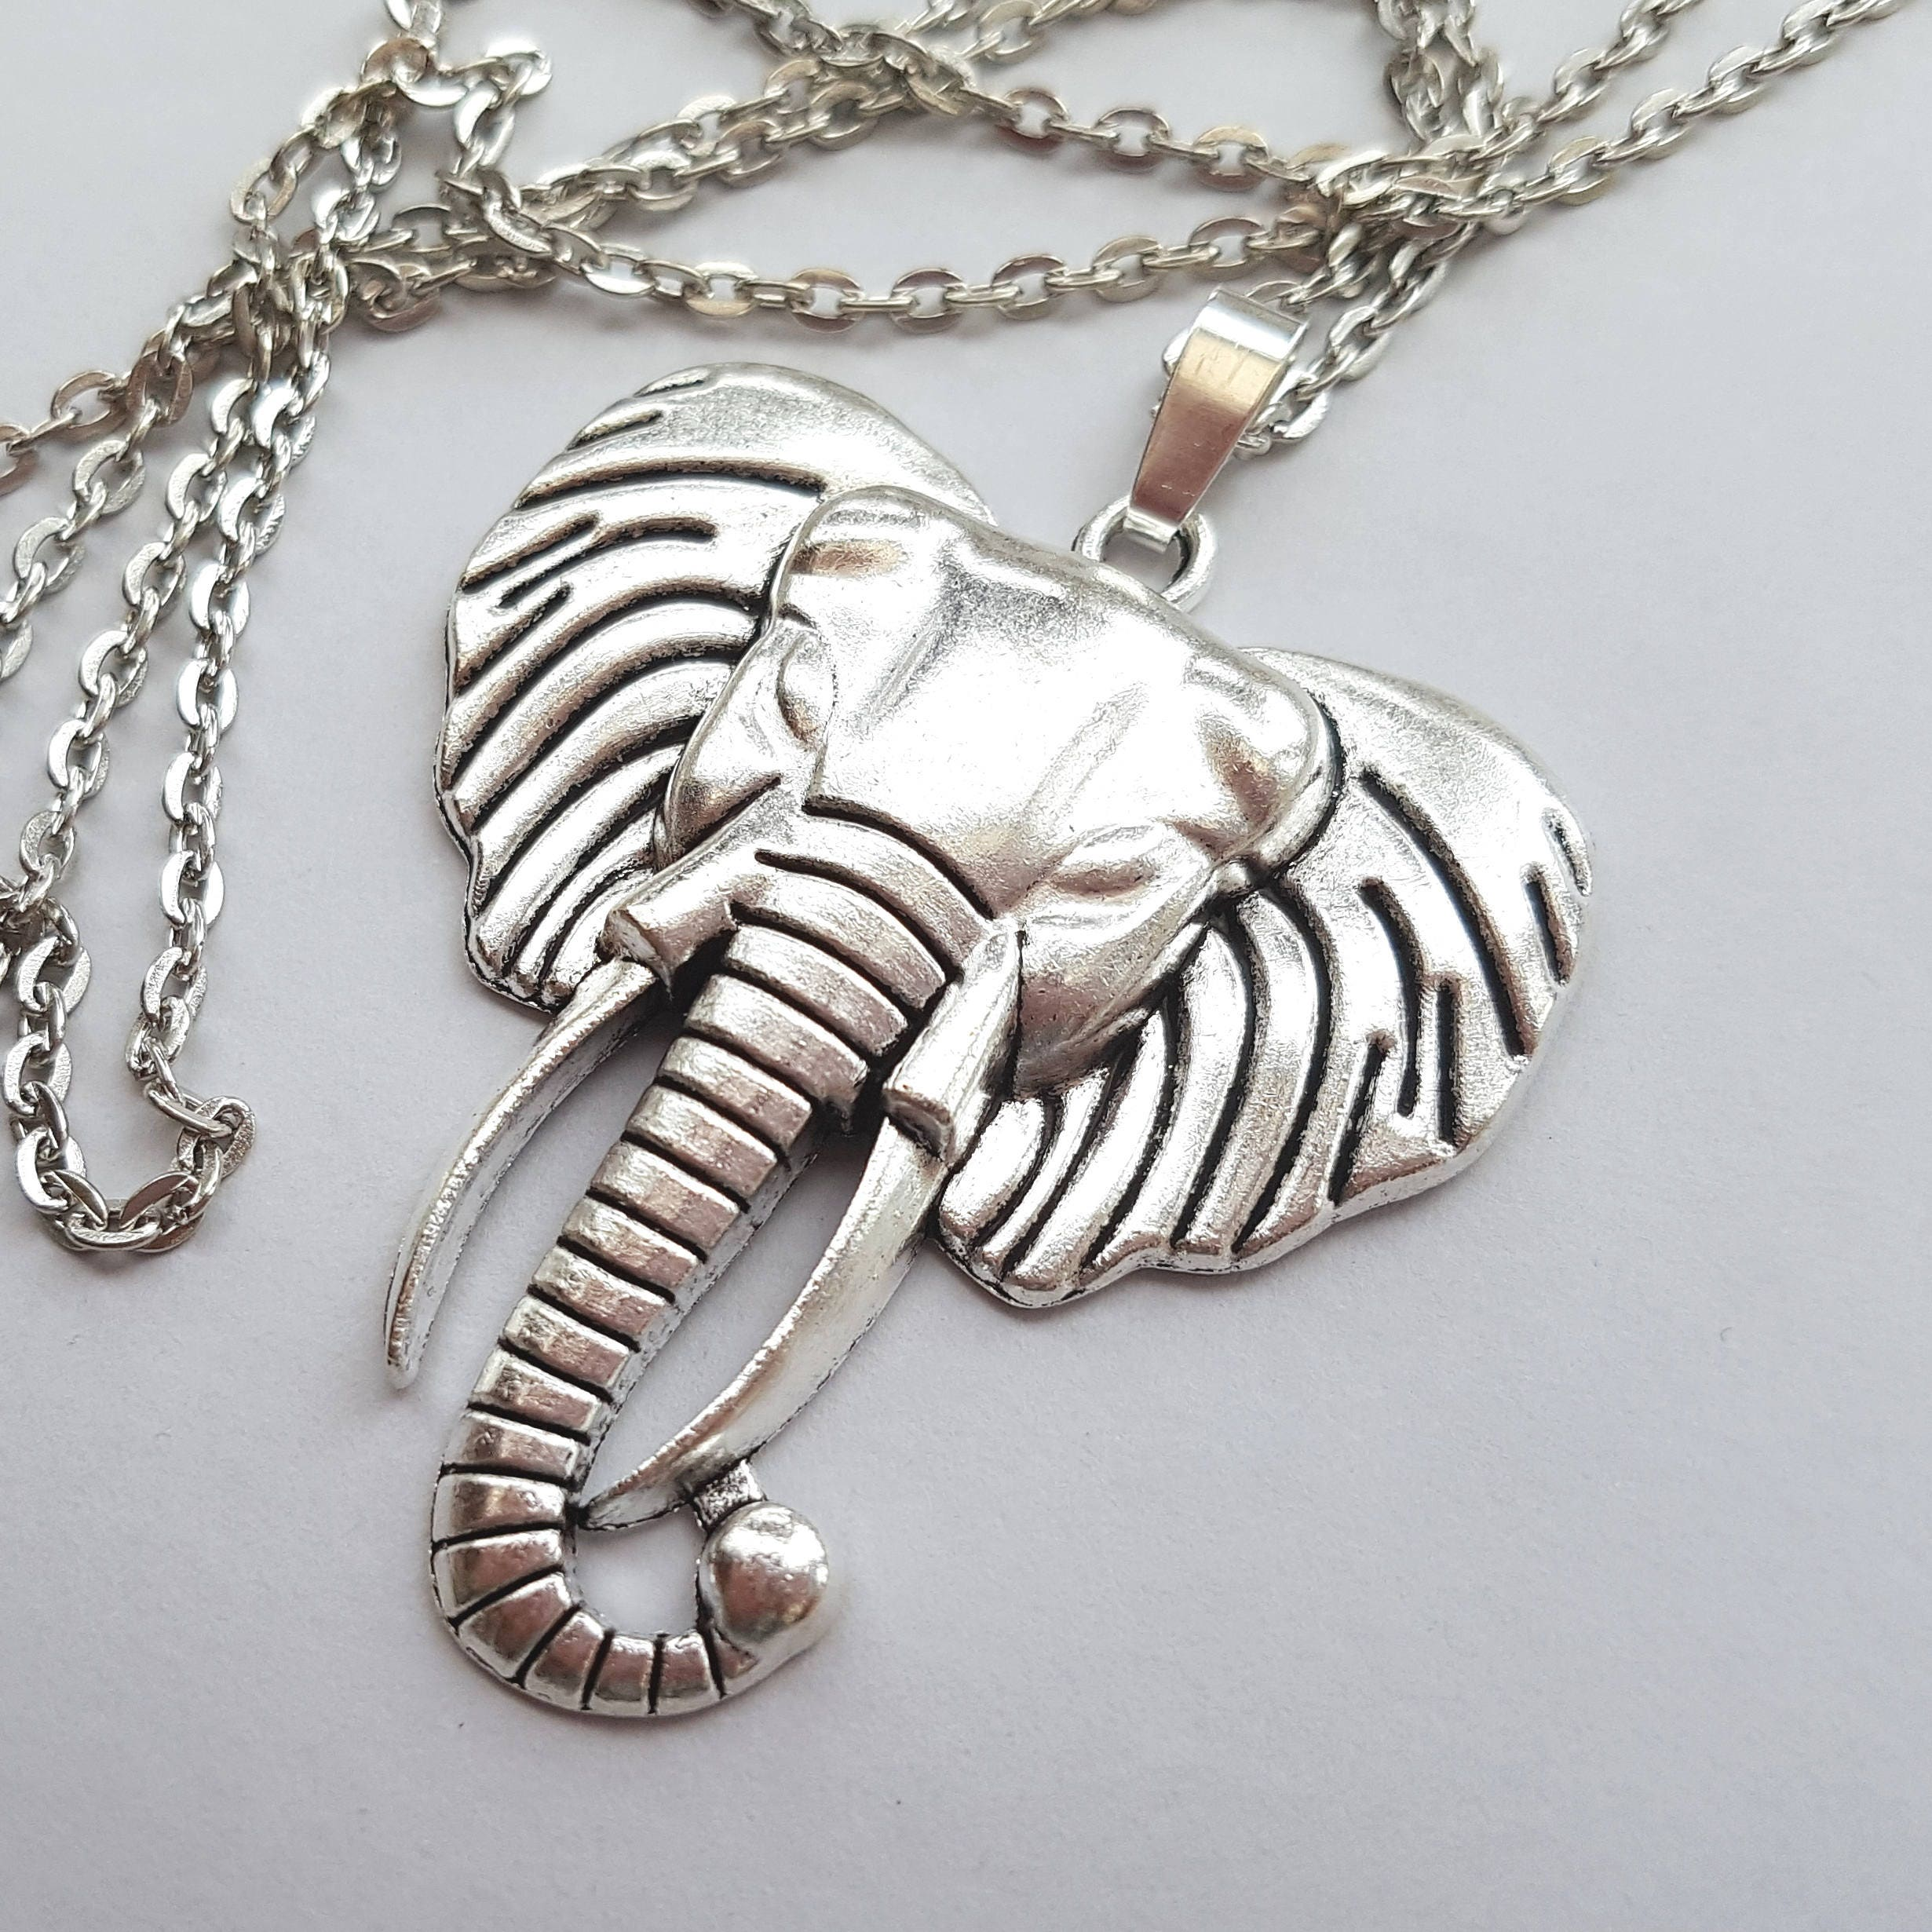 lane luke antiques head chain vintage best f elephant necklace rl pendant razza item link pic ruby large